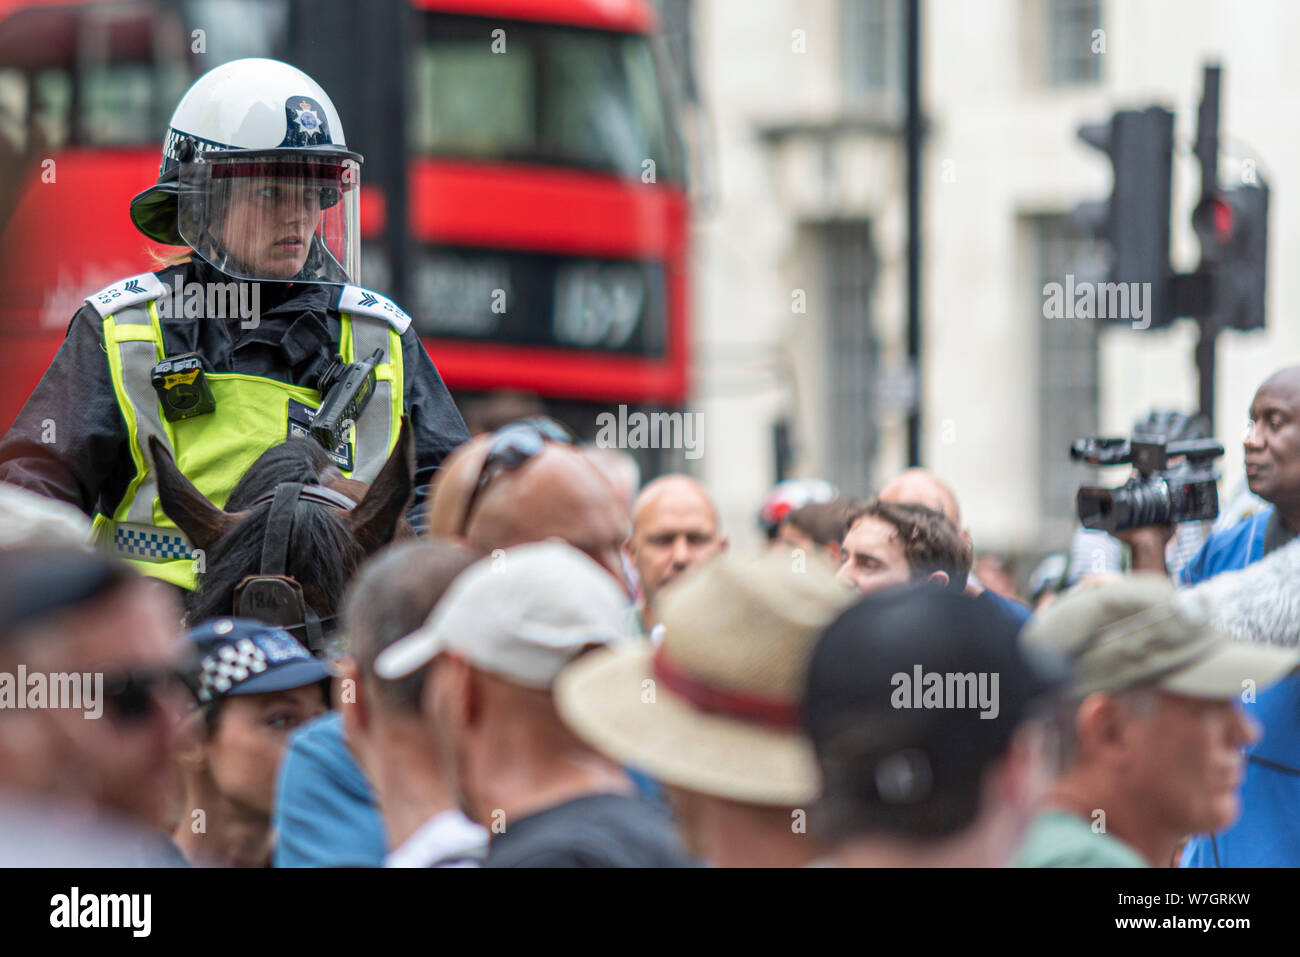 lone-female-police-sergeant-officer-on-horseback-looking-concerned-at-free-tommy-robinson-protest-rally-in-london-uk-mounted-police-horse-rider-W7GRKW.jpg